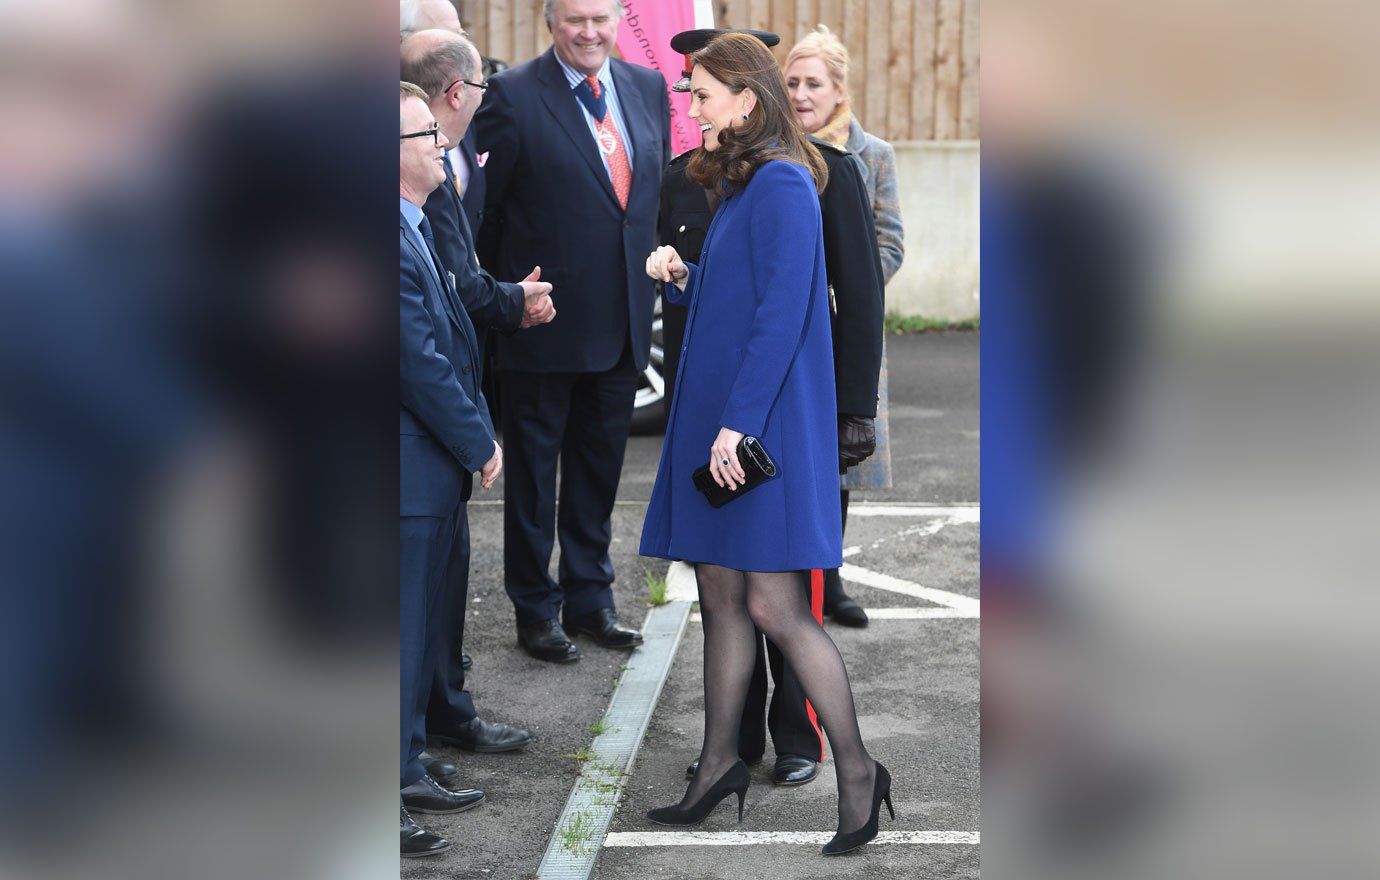 WICKFORD, ENGLAND - FEBRUARY 07: Catherine, Duchess Of Cambridge arrives to open the Action On Addiction Community Treatment Centre in Essex on February 7, 2018 in Wickford, England. (Photo by Stuart C. Wilson/Getty Images)